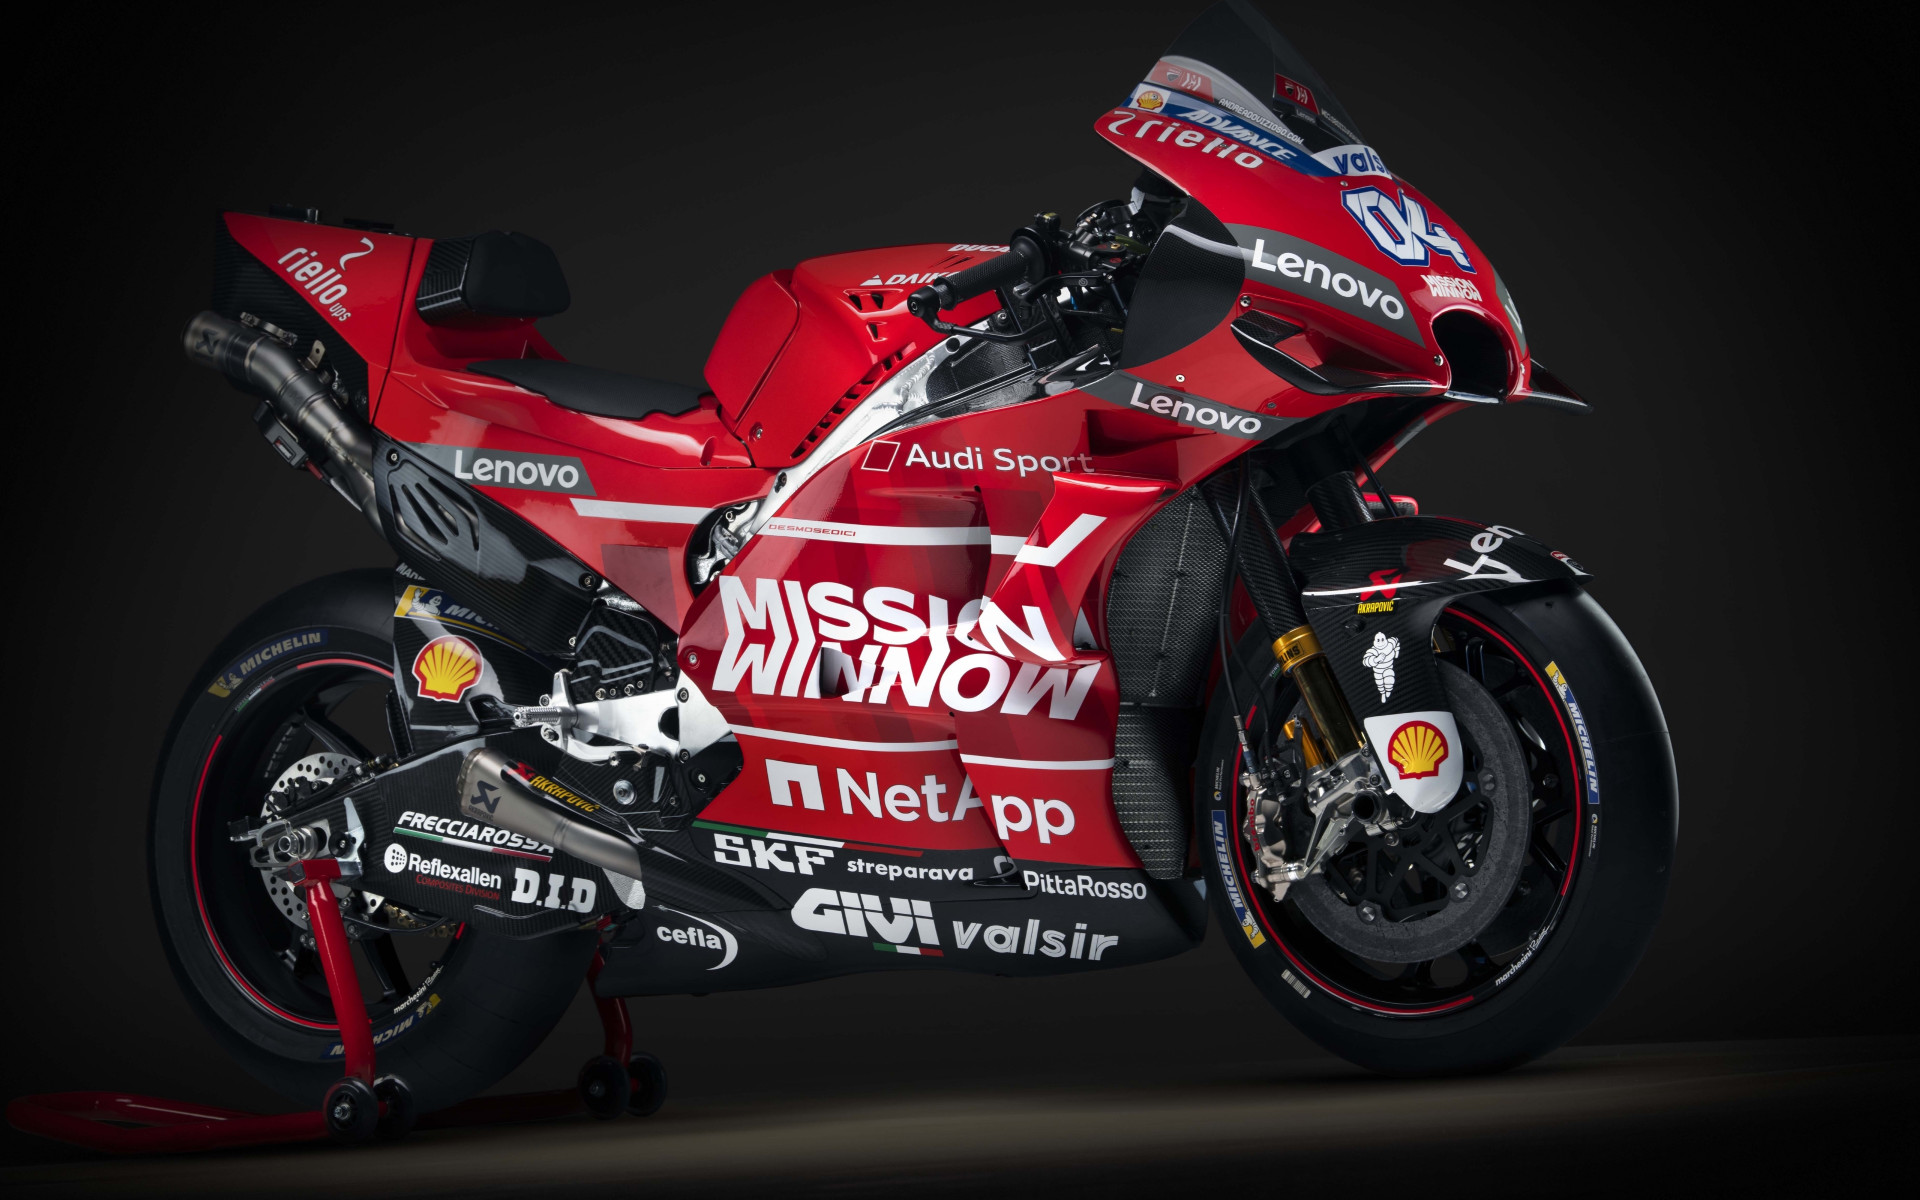 Ducati Desmosedici GP19 wallpaper 1920x1200